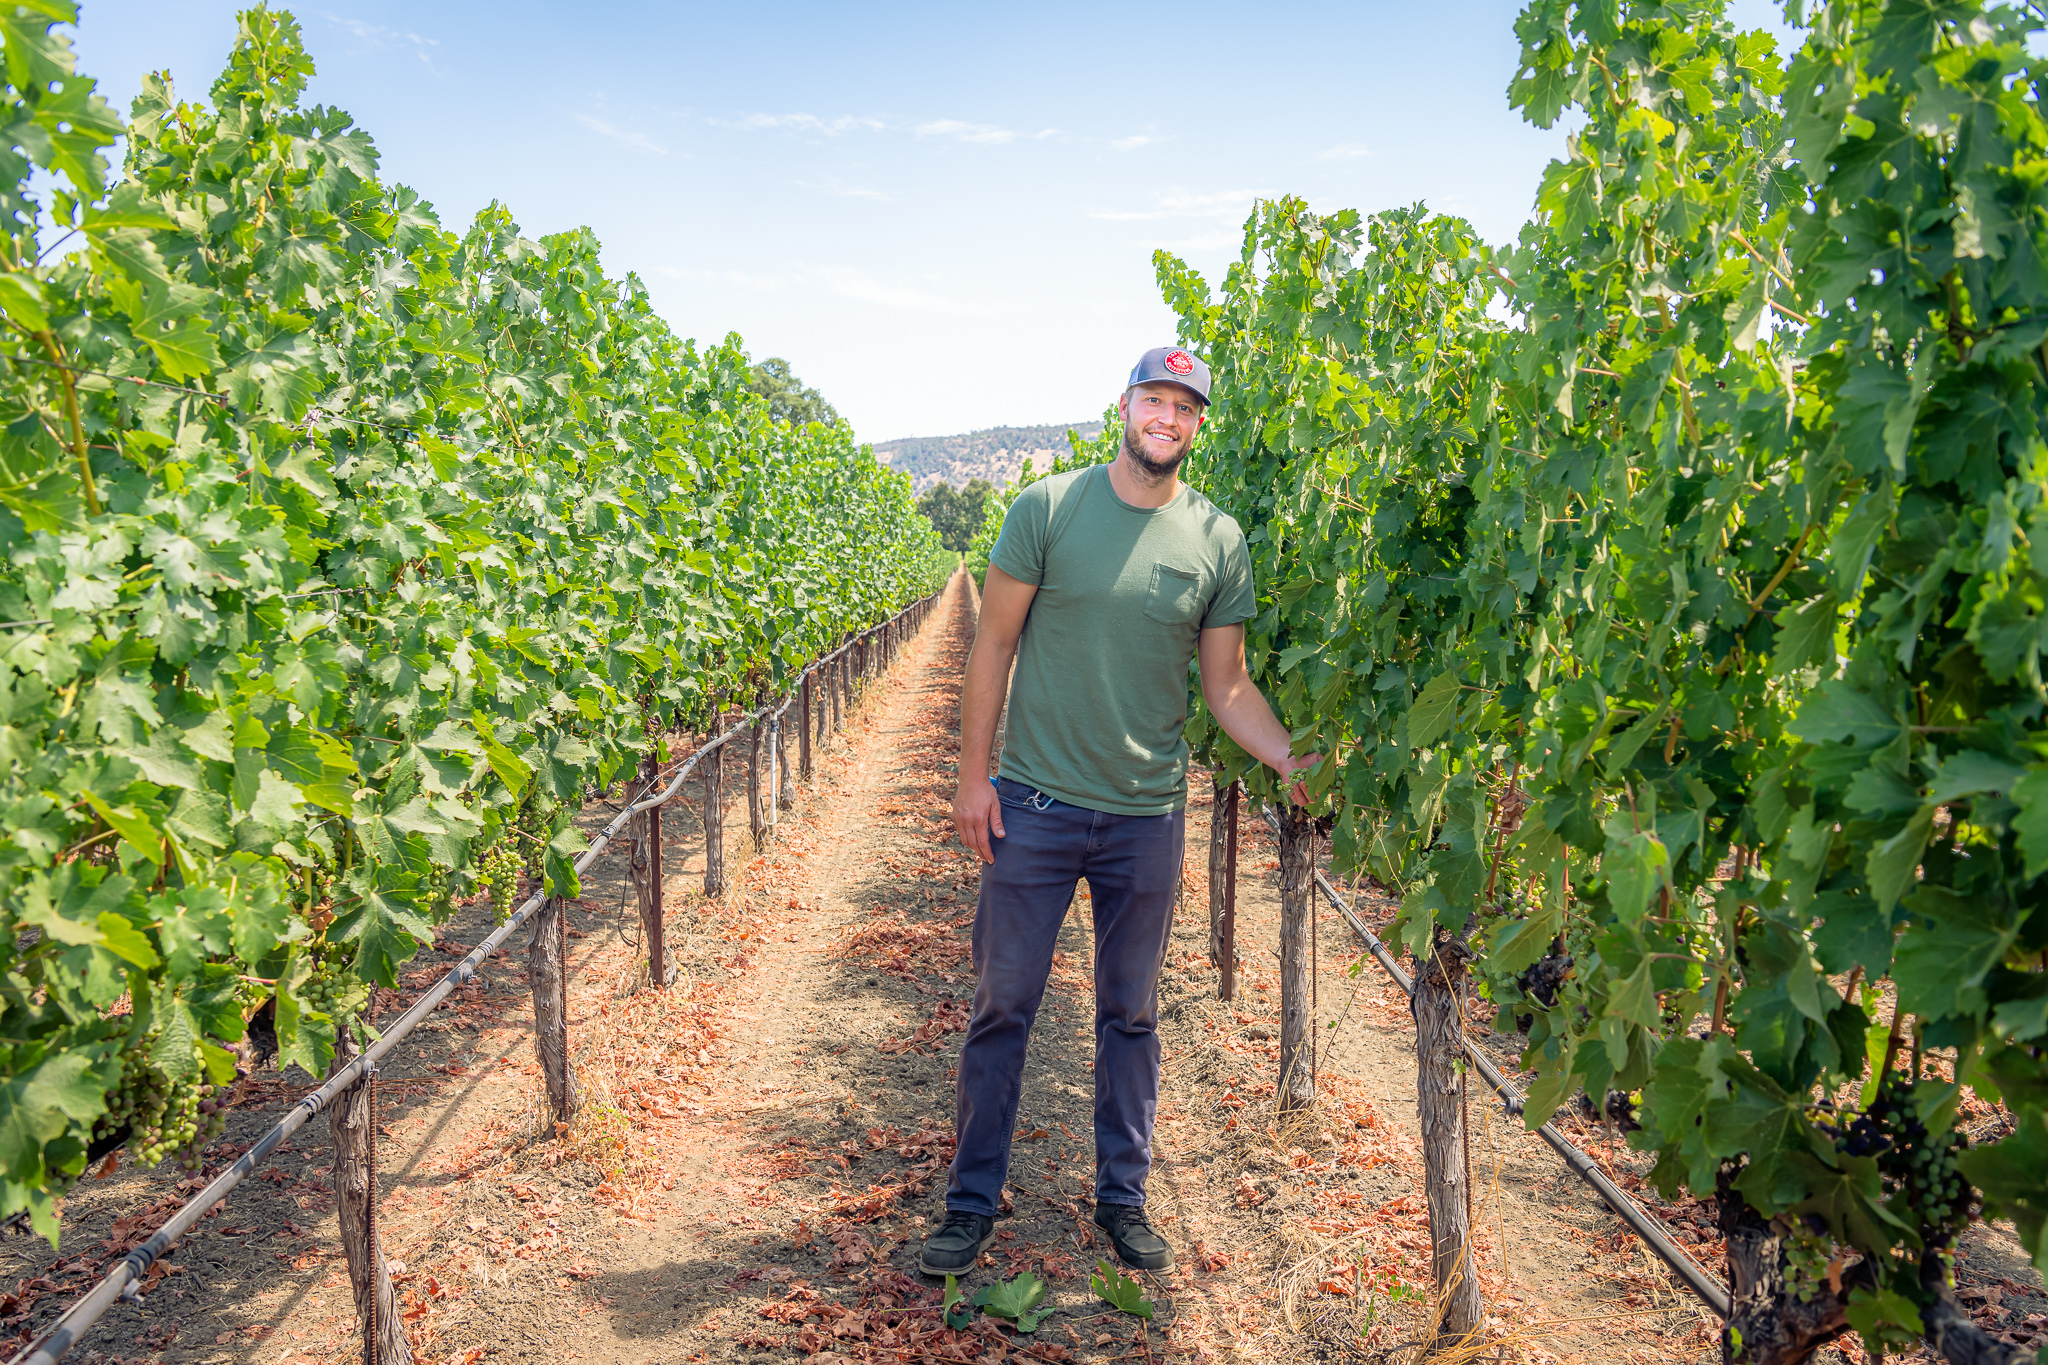 Nickel & Nickel Winemaker Joe Harden Explains How Basketball Influenced Him To Create Great Wines